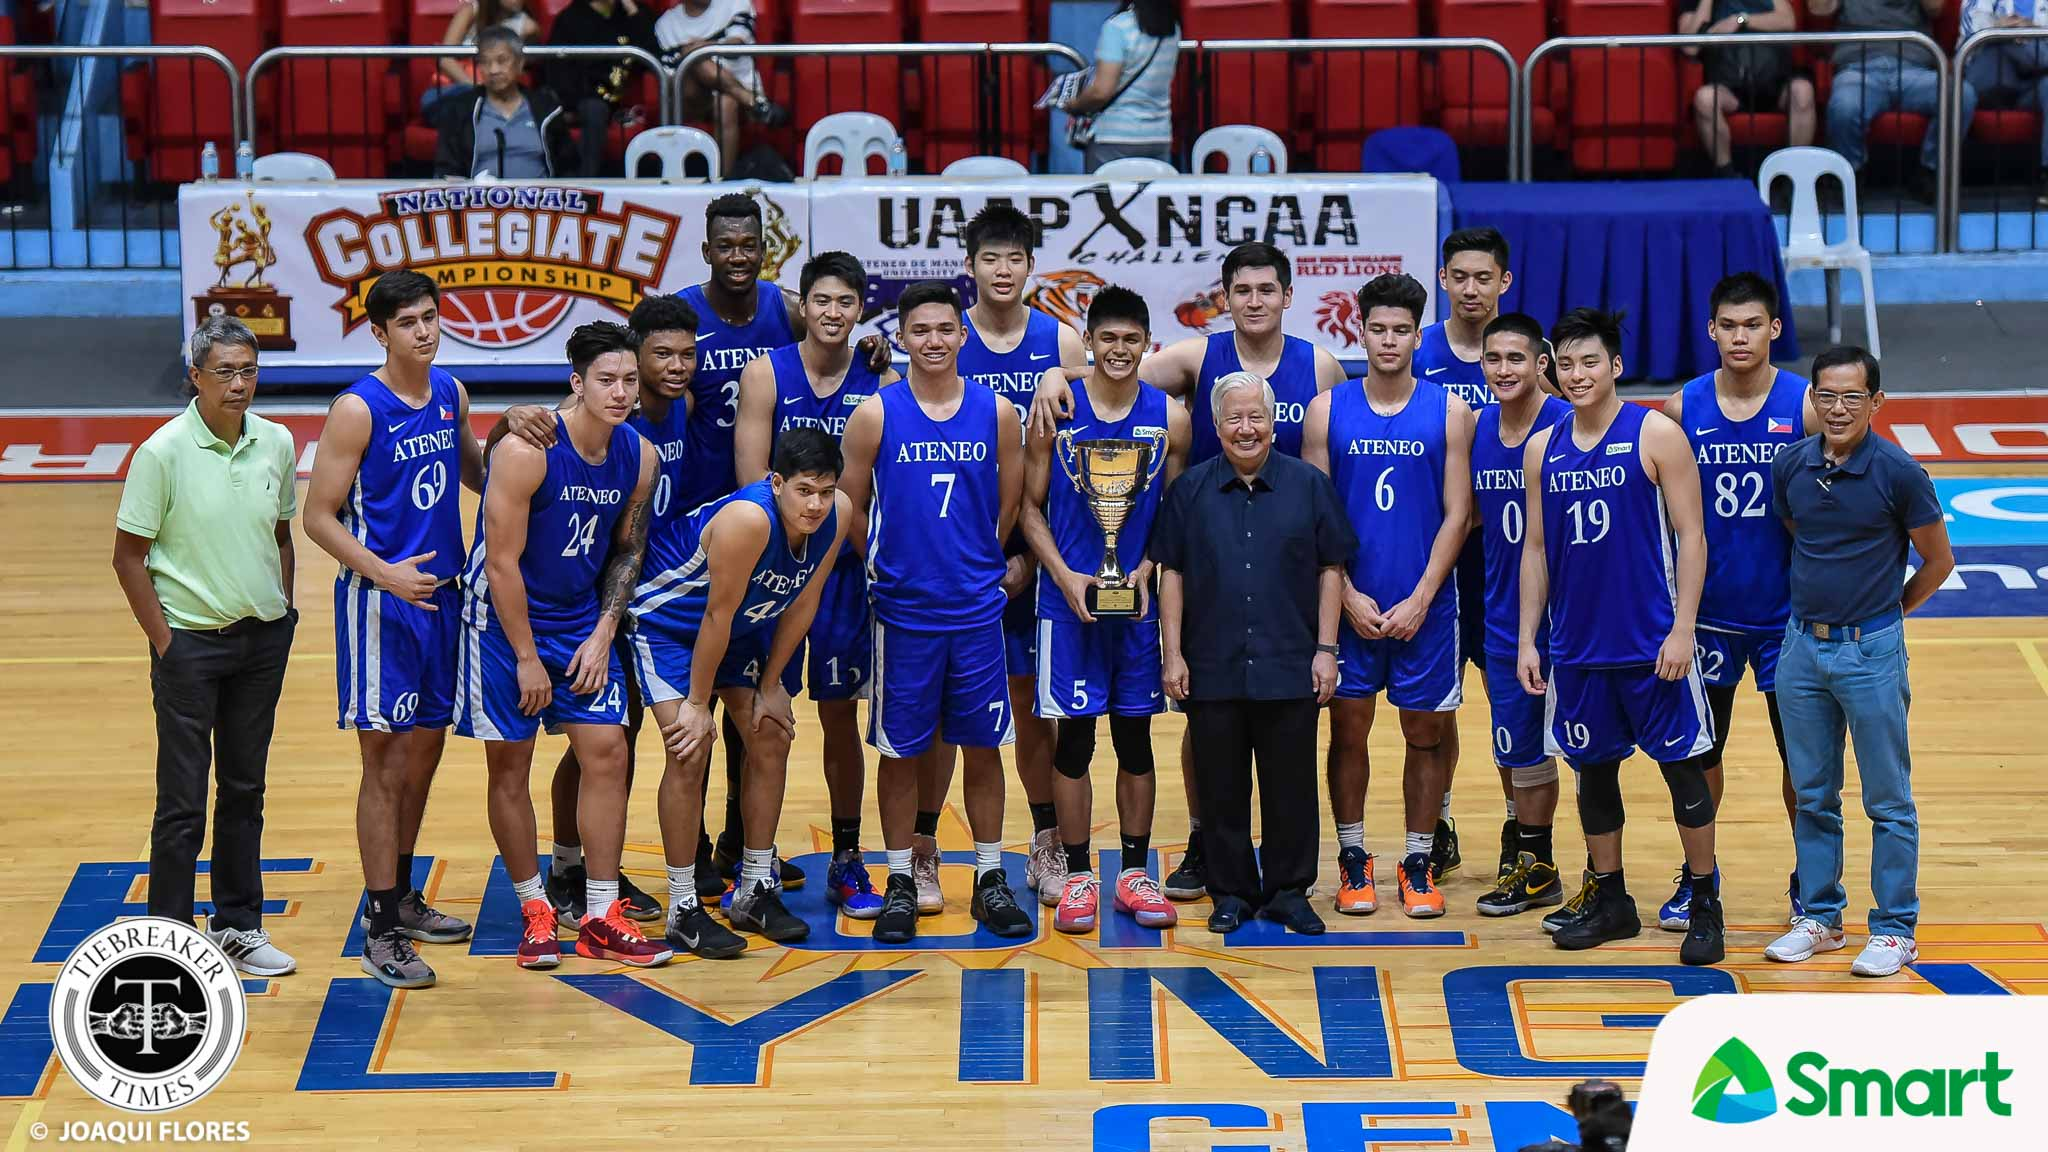 Tiebreaker Times UAAP king Ateneo whips NCAA champ Letran, sweeps PCCL group ADMU Basketball CSJL News  Troy Mallillin Tab Baldwin SJ Belangel Pao Javillonar Letran Seniors Basketball Dwight Ramos Christian Fajarito Bonnie Tan Ateneo Men's Basketball 2020 PCCL National Championship